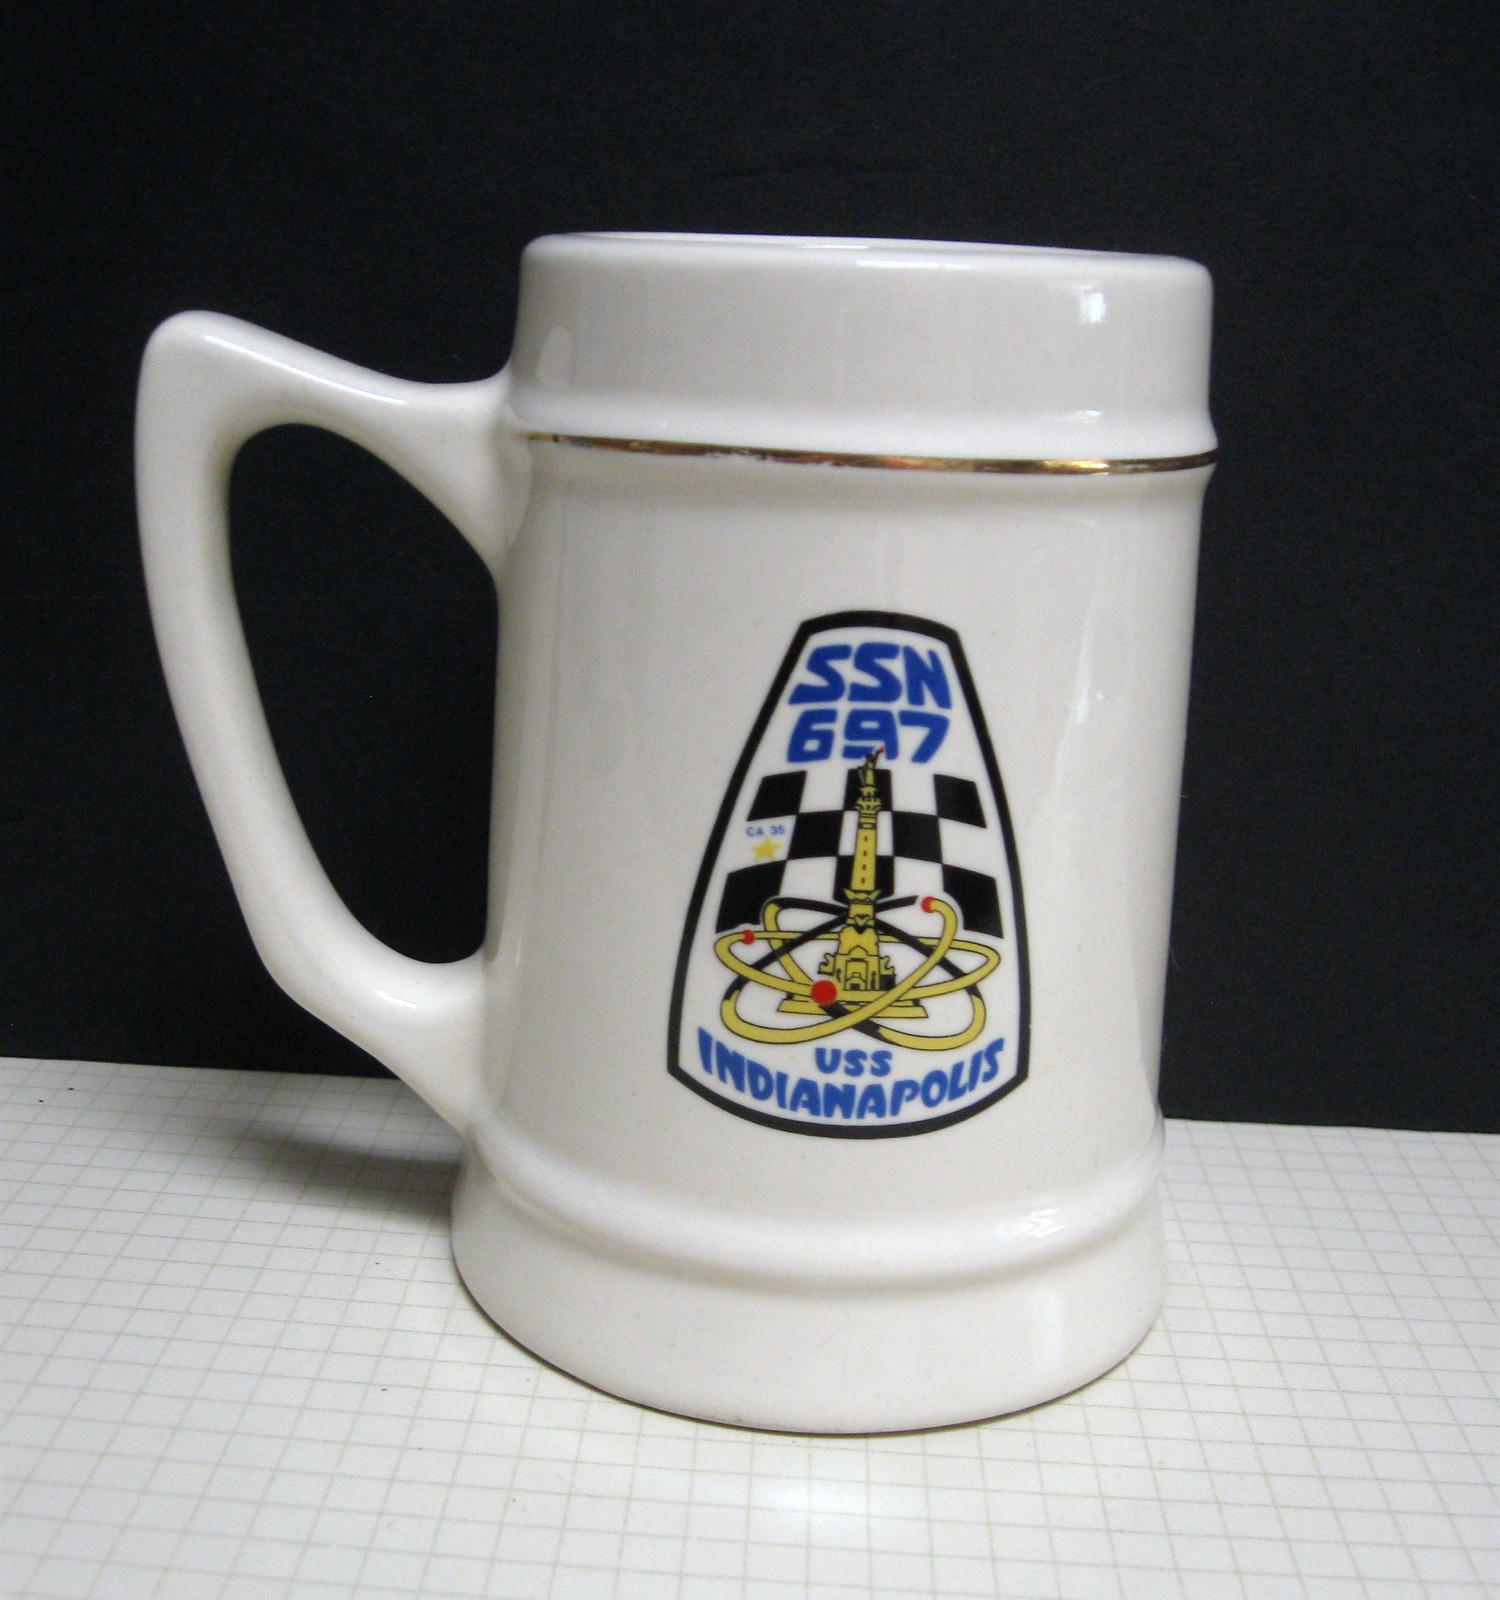 USS Indianapolis SSN 697 Commemorative 12-Ounce Ceramic Pub Stein - Beer Mug